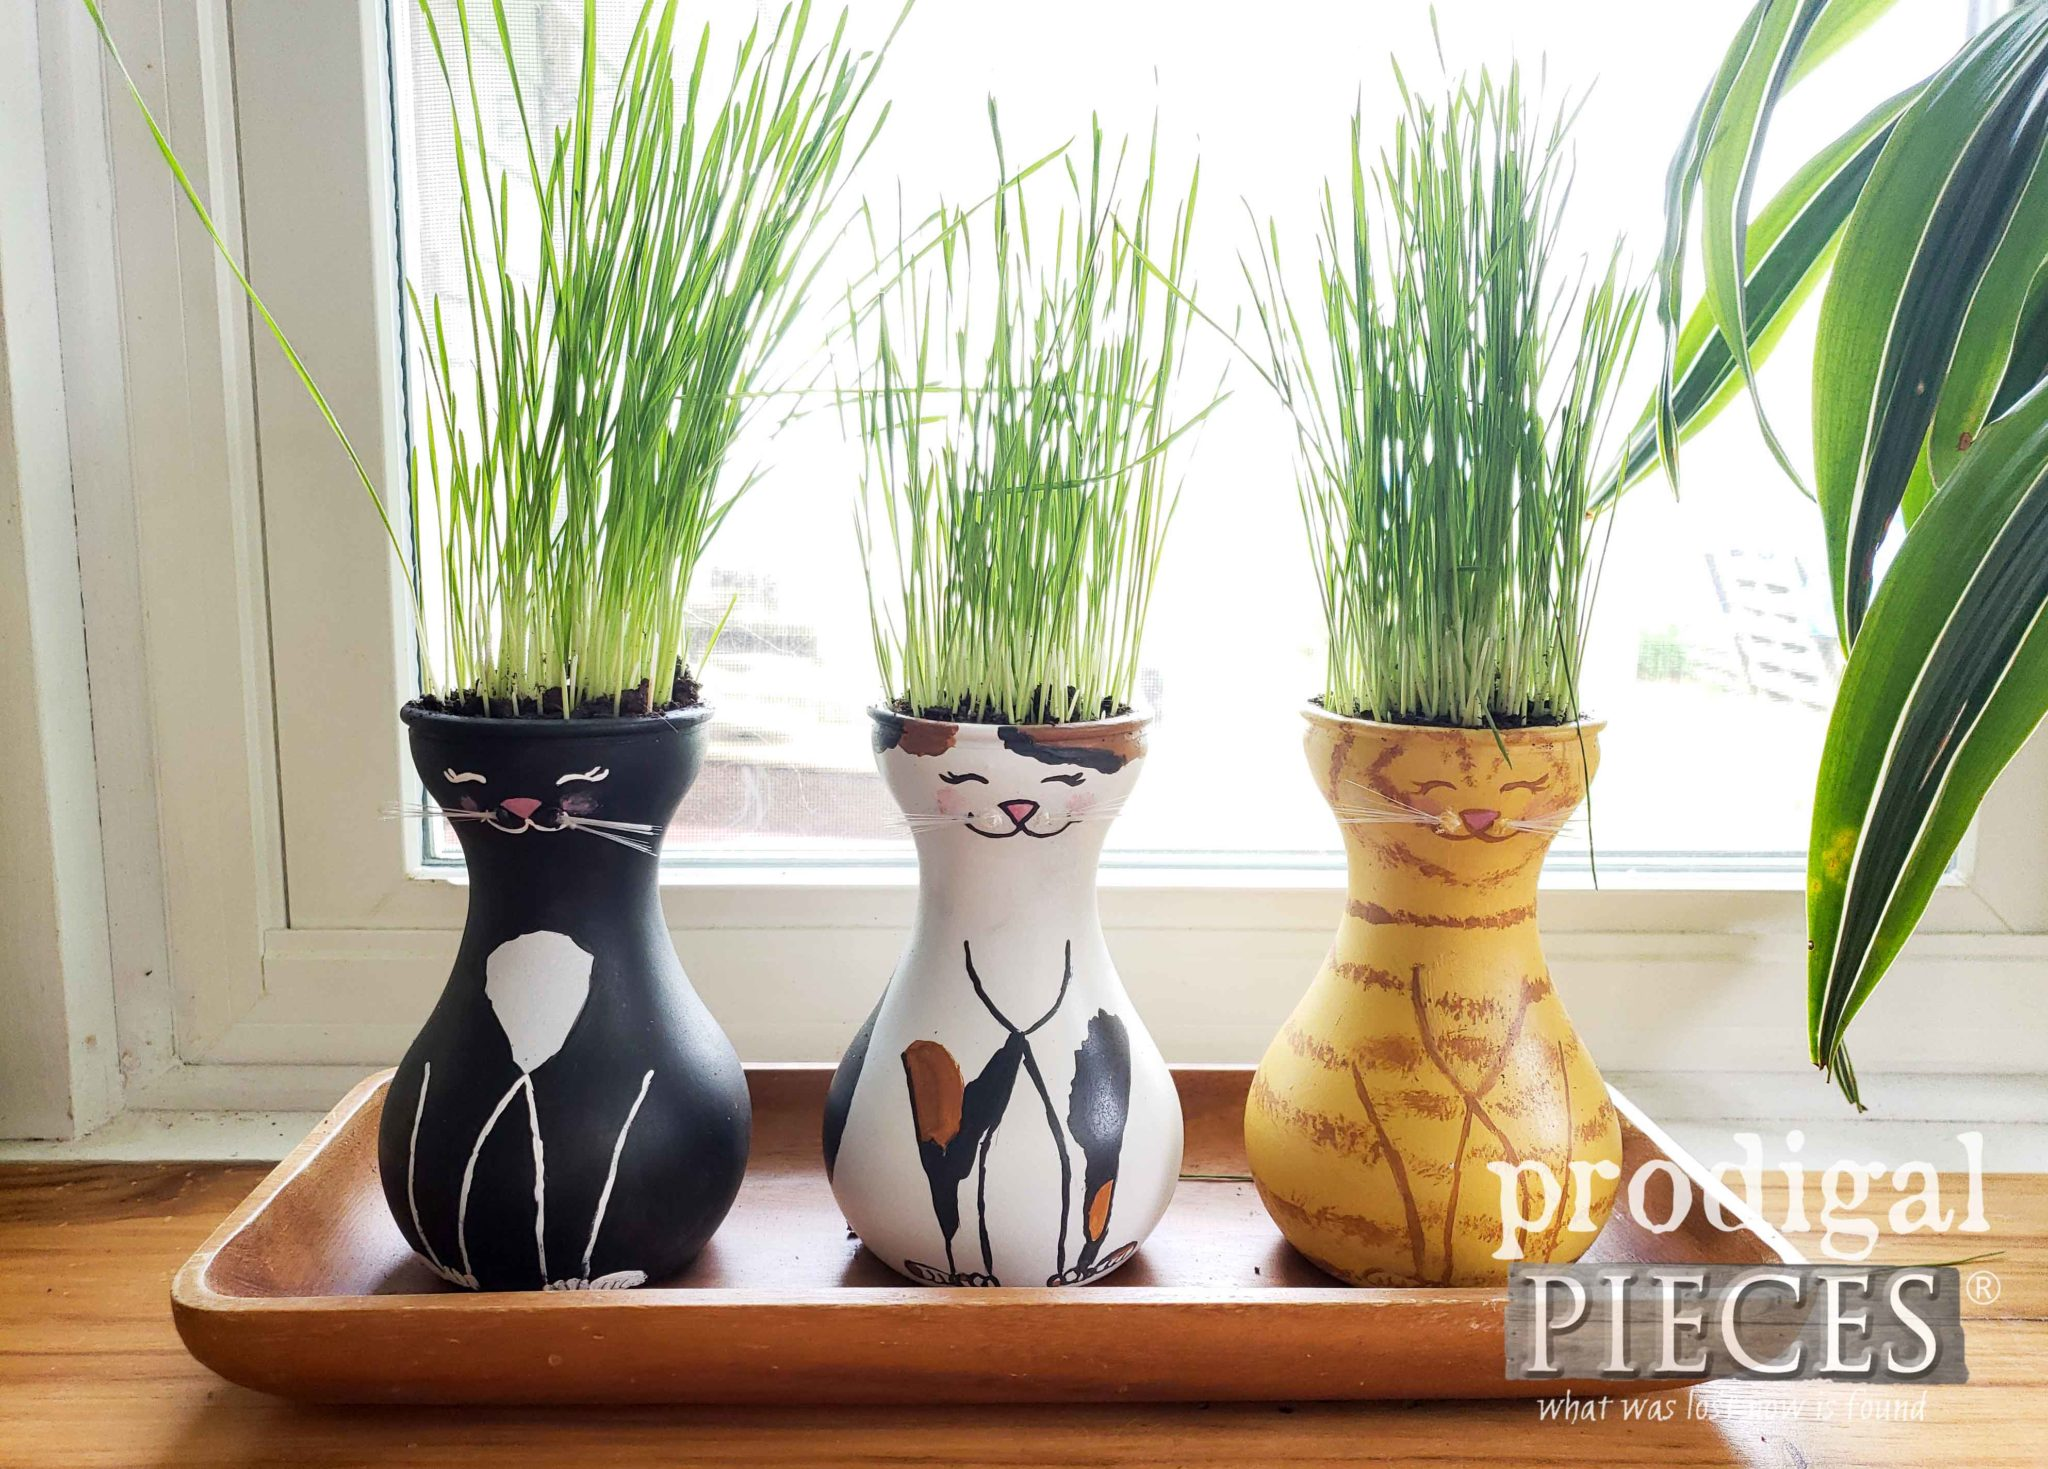 DIY Cat Grass Vases from Upcycled Hydroponic Vases by Larissa of Prodigal Pieces | prodigalpieces.com #prodigalpieces #diy #handmade #pets #home #dogs #health #food #garden